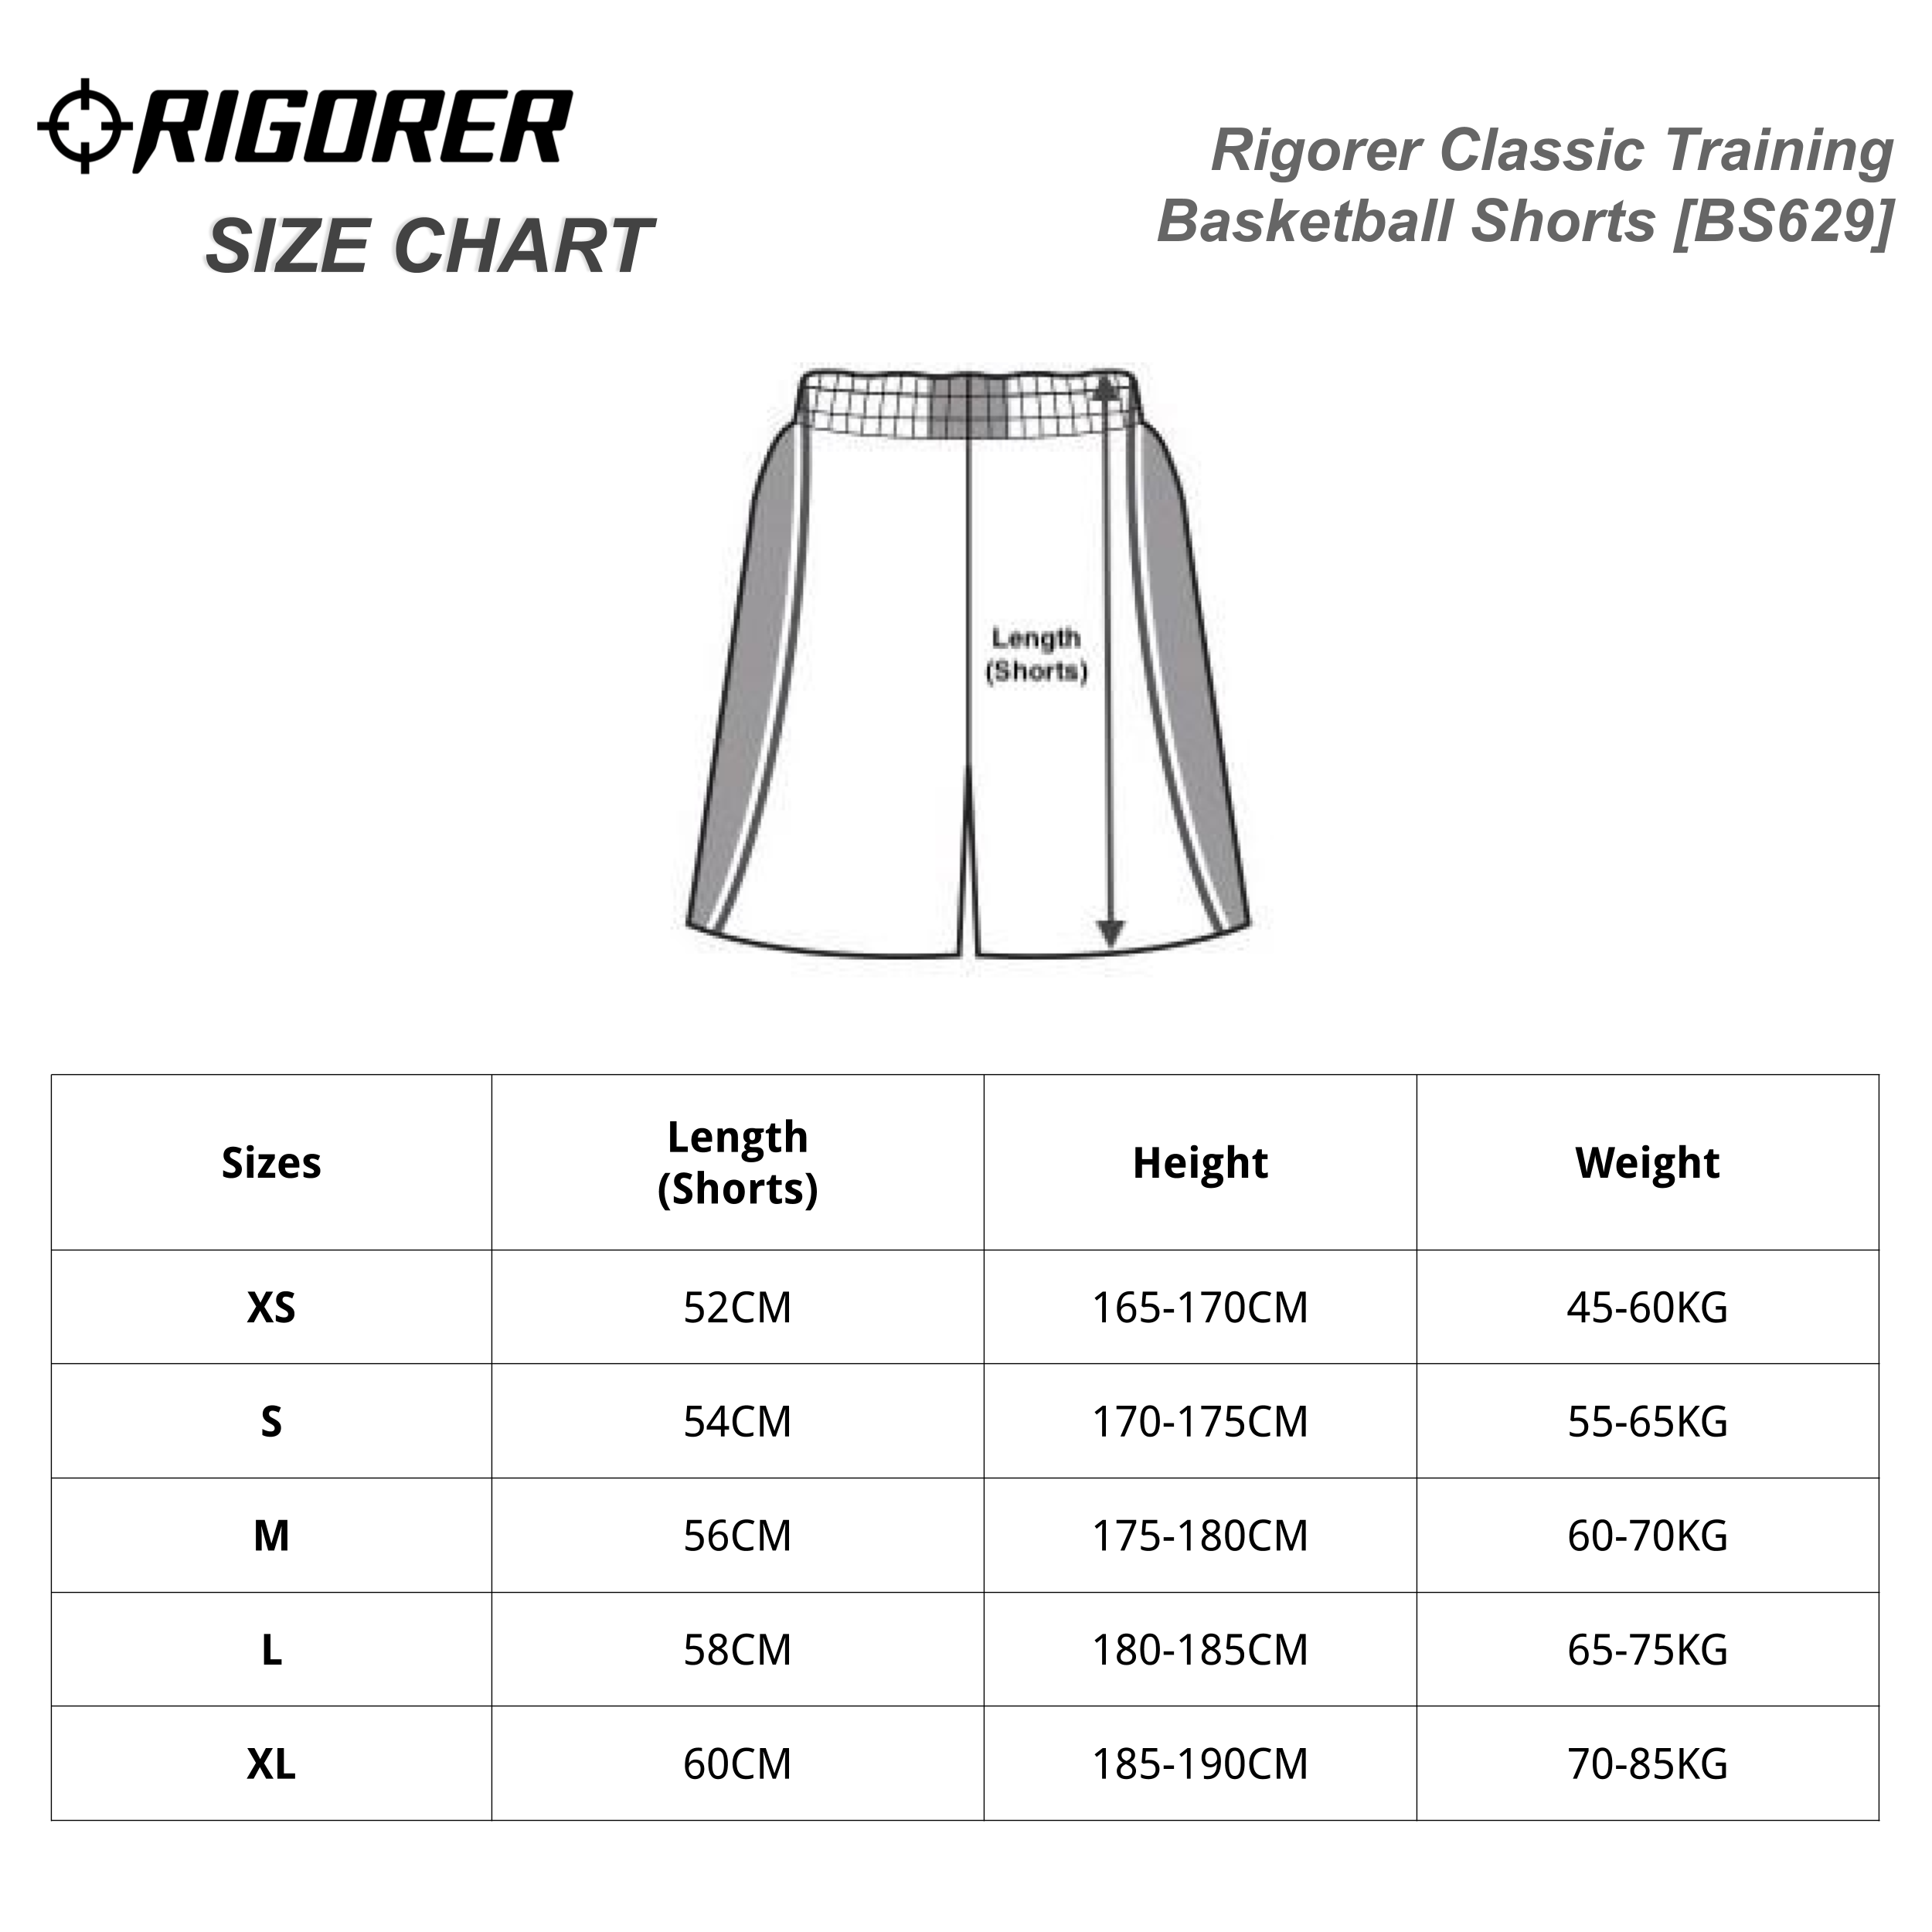 Rigorer Classic Training Basketball Shorts [BS629] Sizing Chart